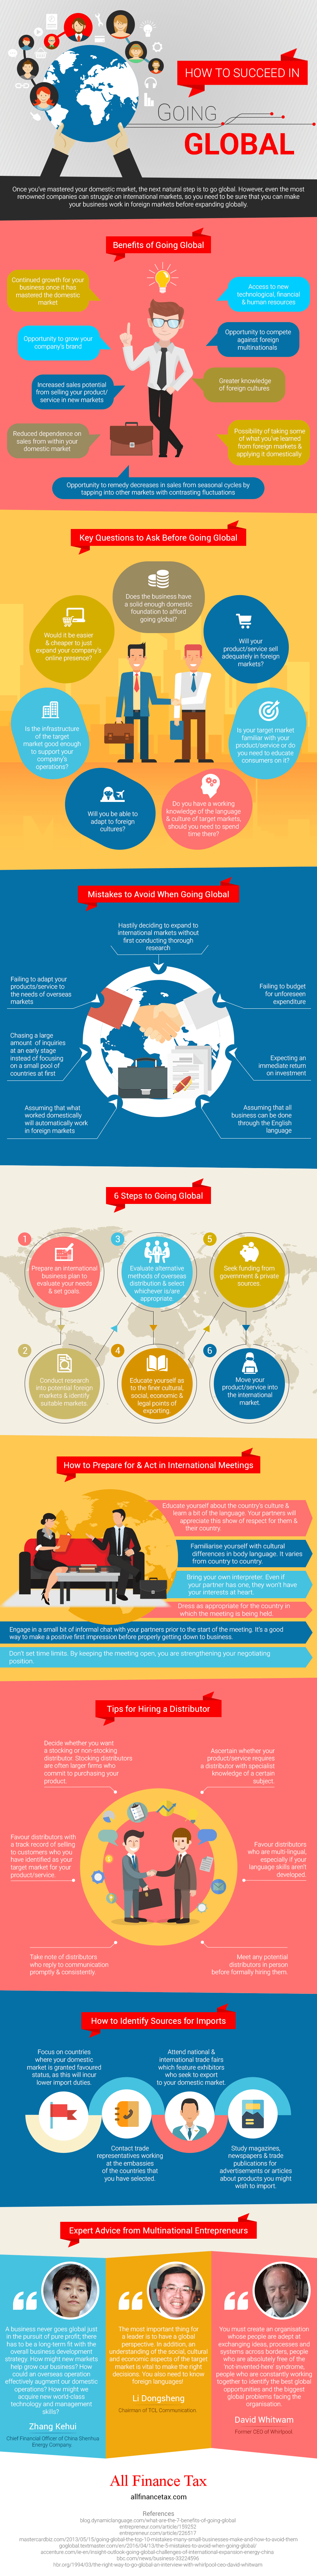 How to Succeed in Going Global – An Infographic